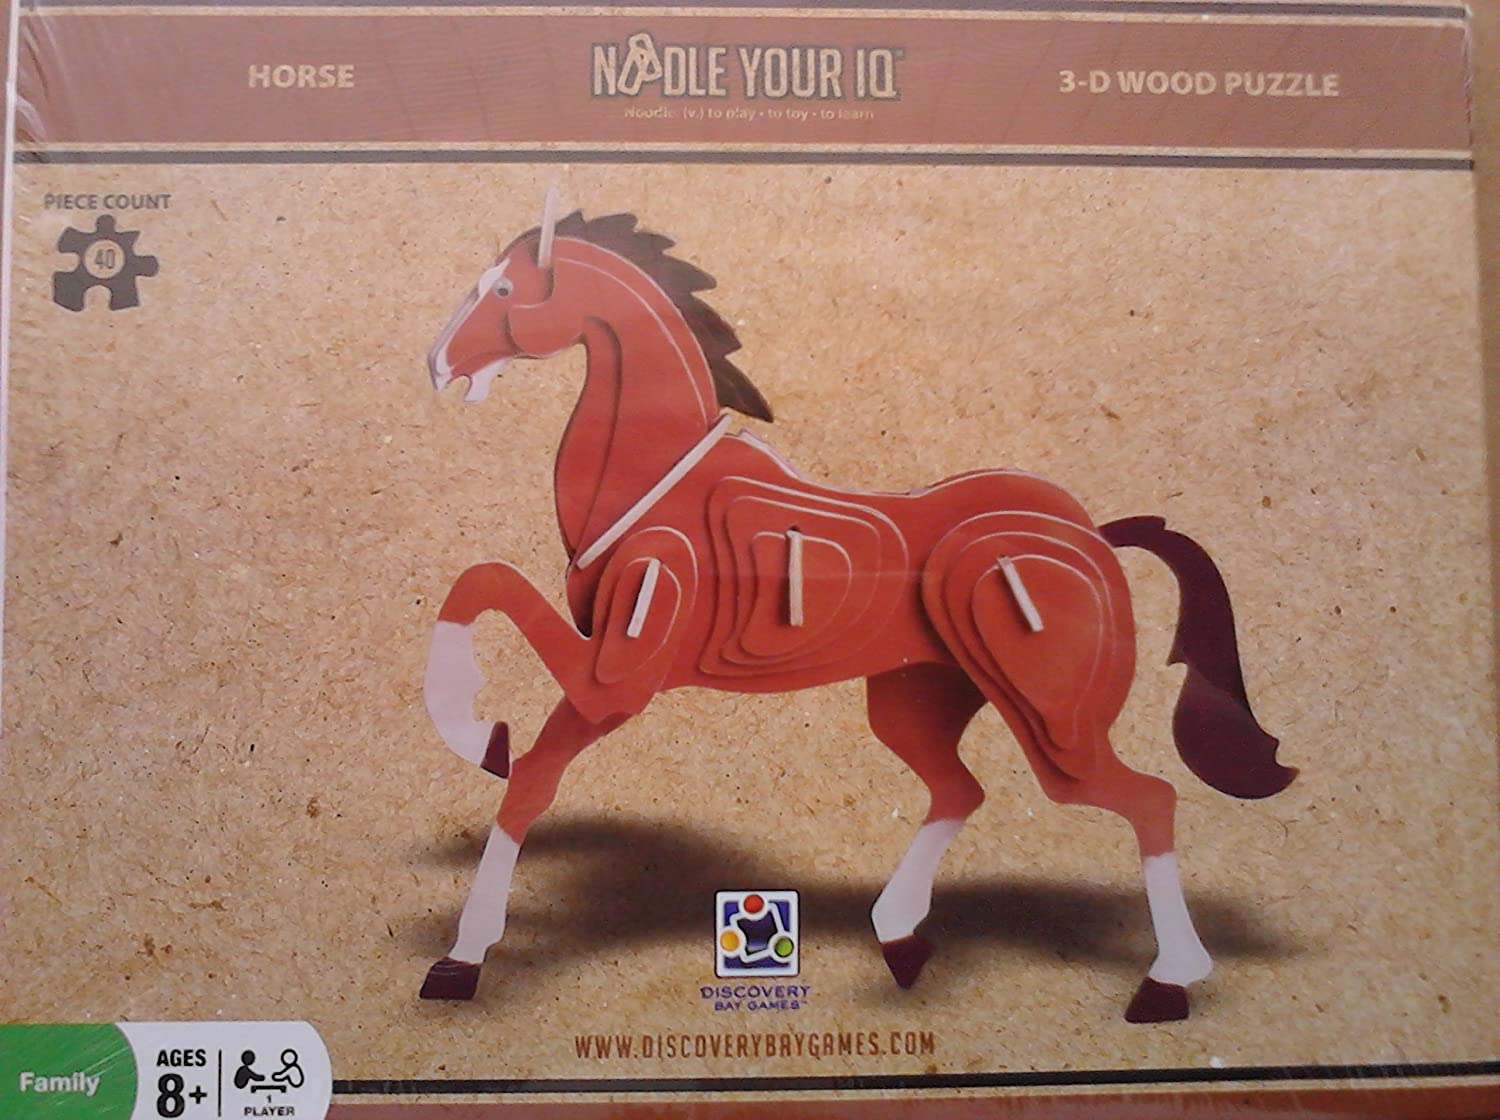 Noodle Your Iq 3d Wooden colord Horse